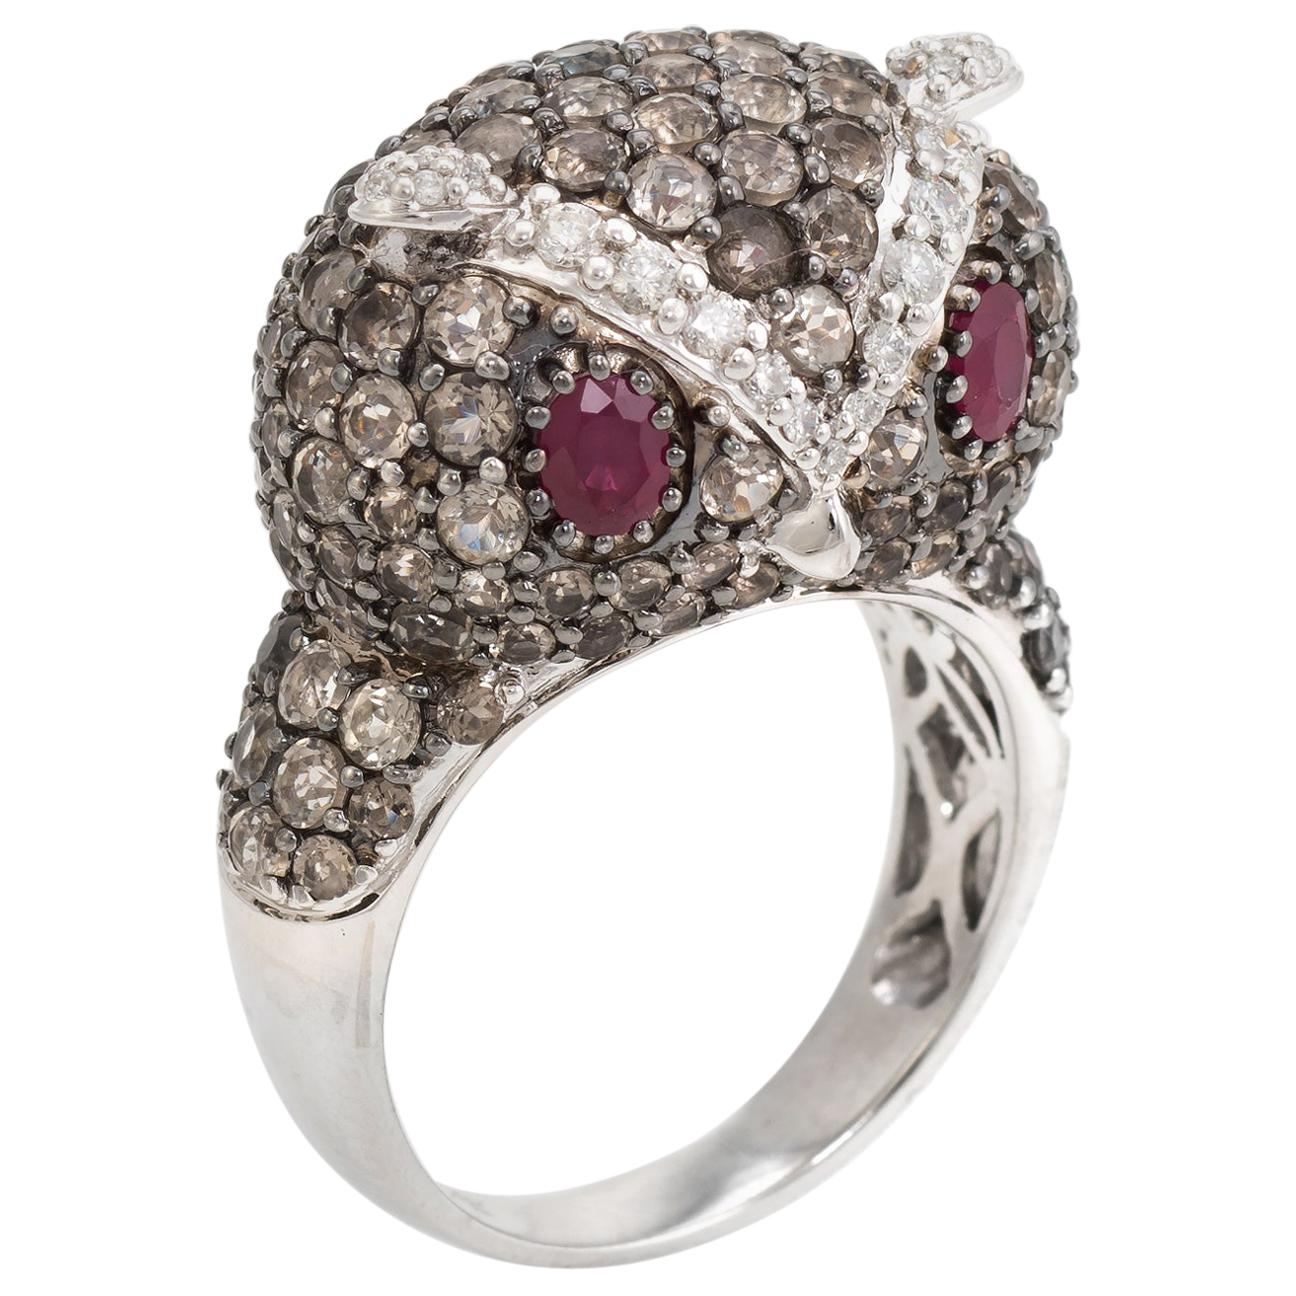 Owl Cocktail Ring Estate 18 Karat White Gold Diamond Ruby Quartz Vintage Jewelry